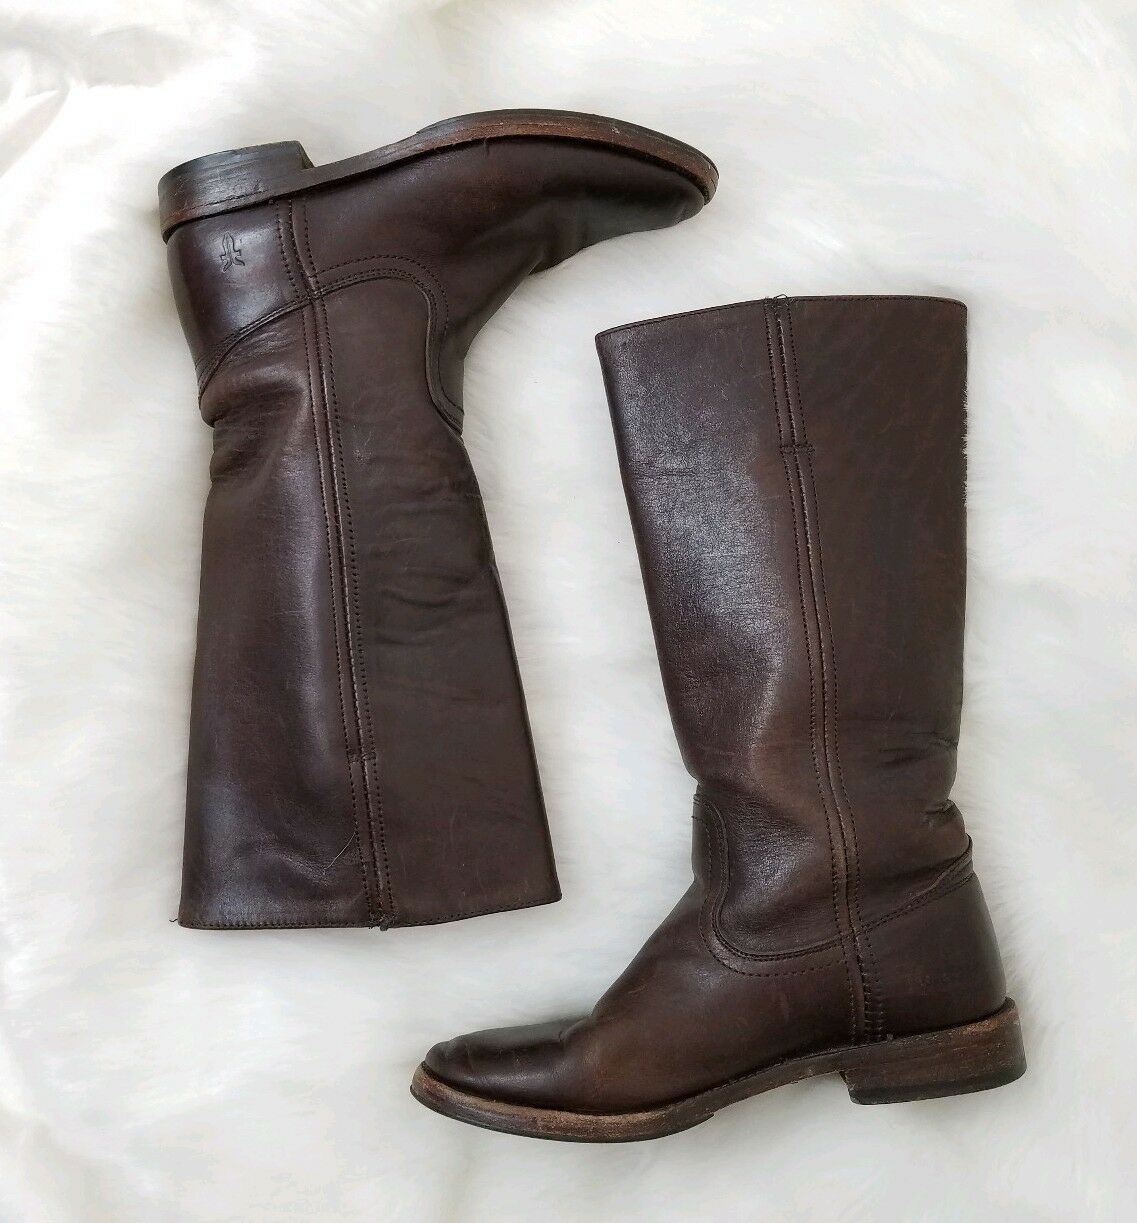 Frye Company Brown Leather Pull-on Riding Boots Flat Heel Womens Size 6 B